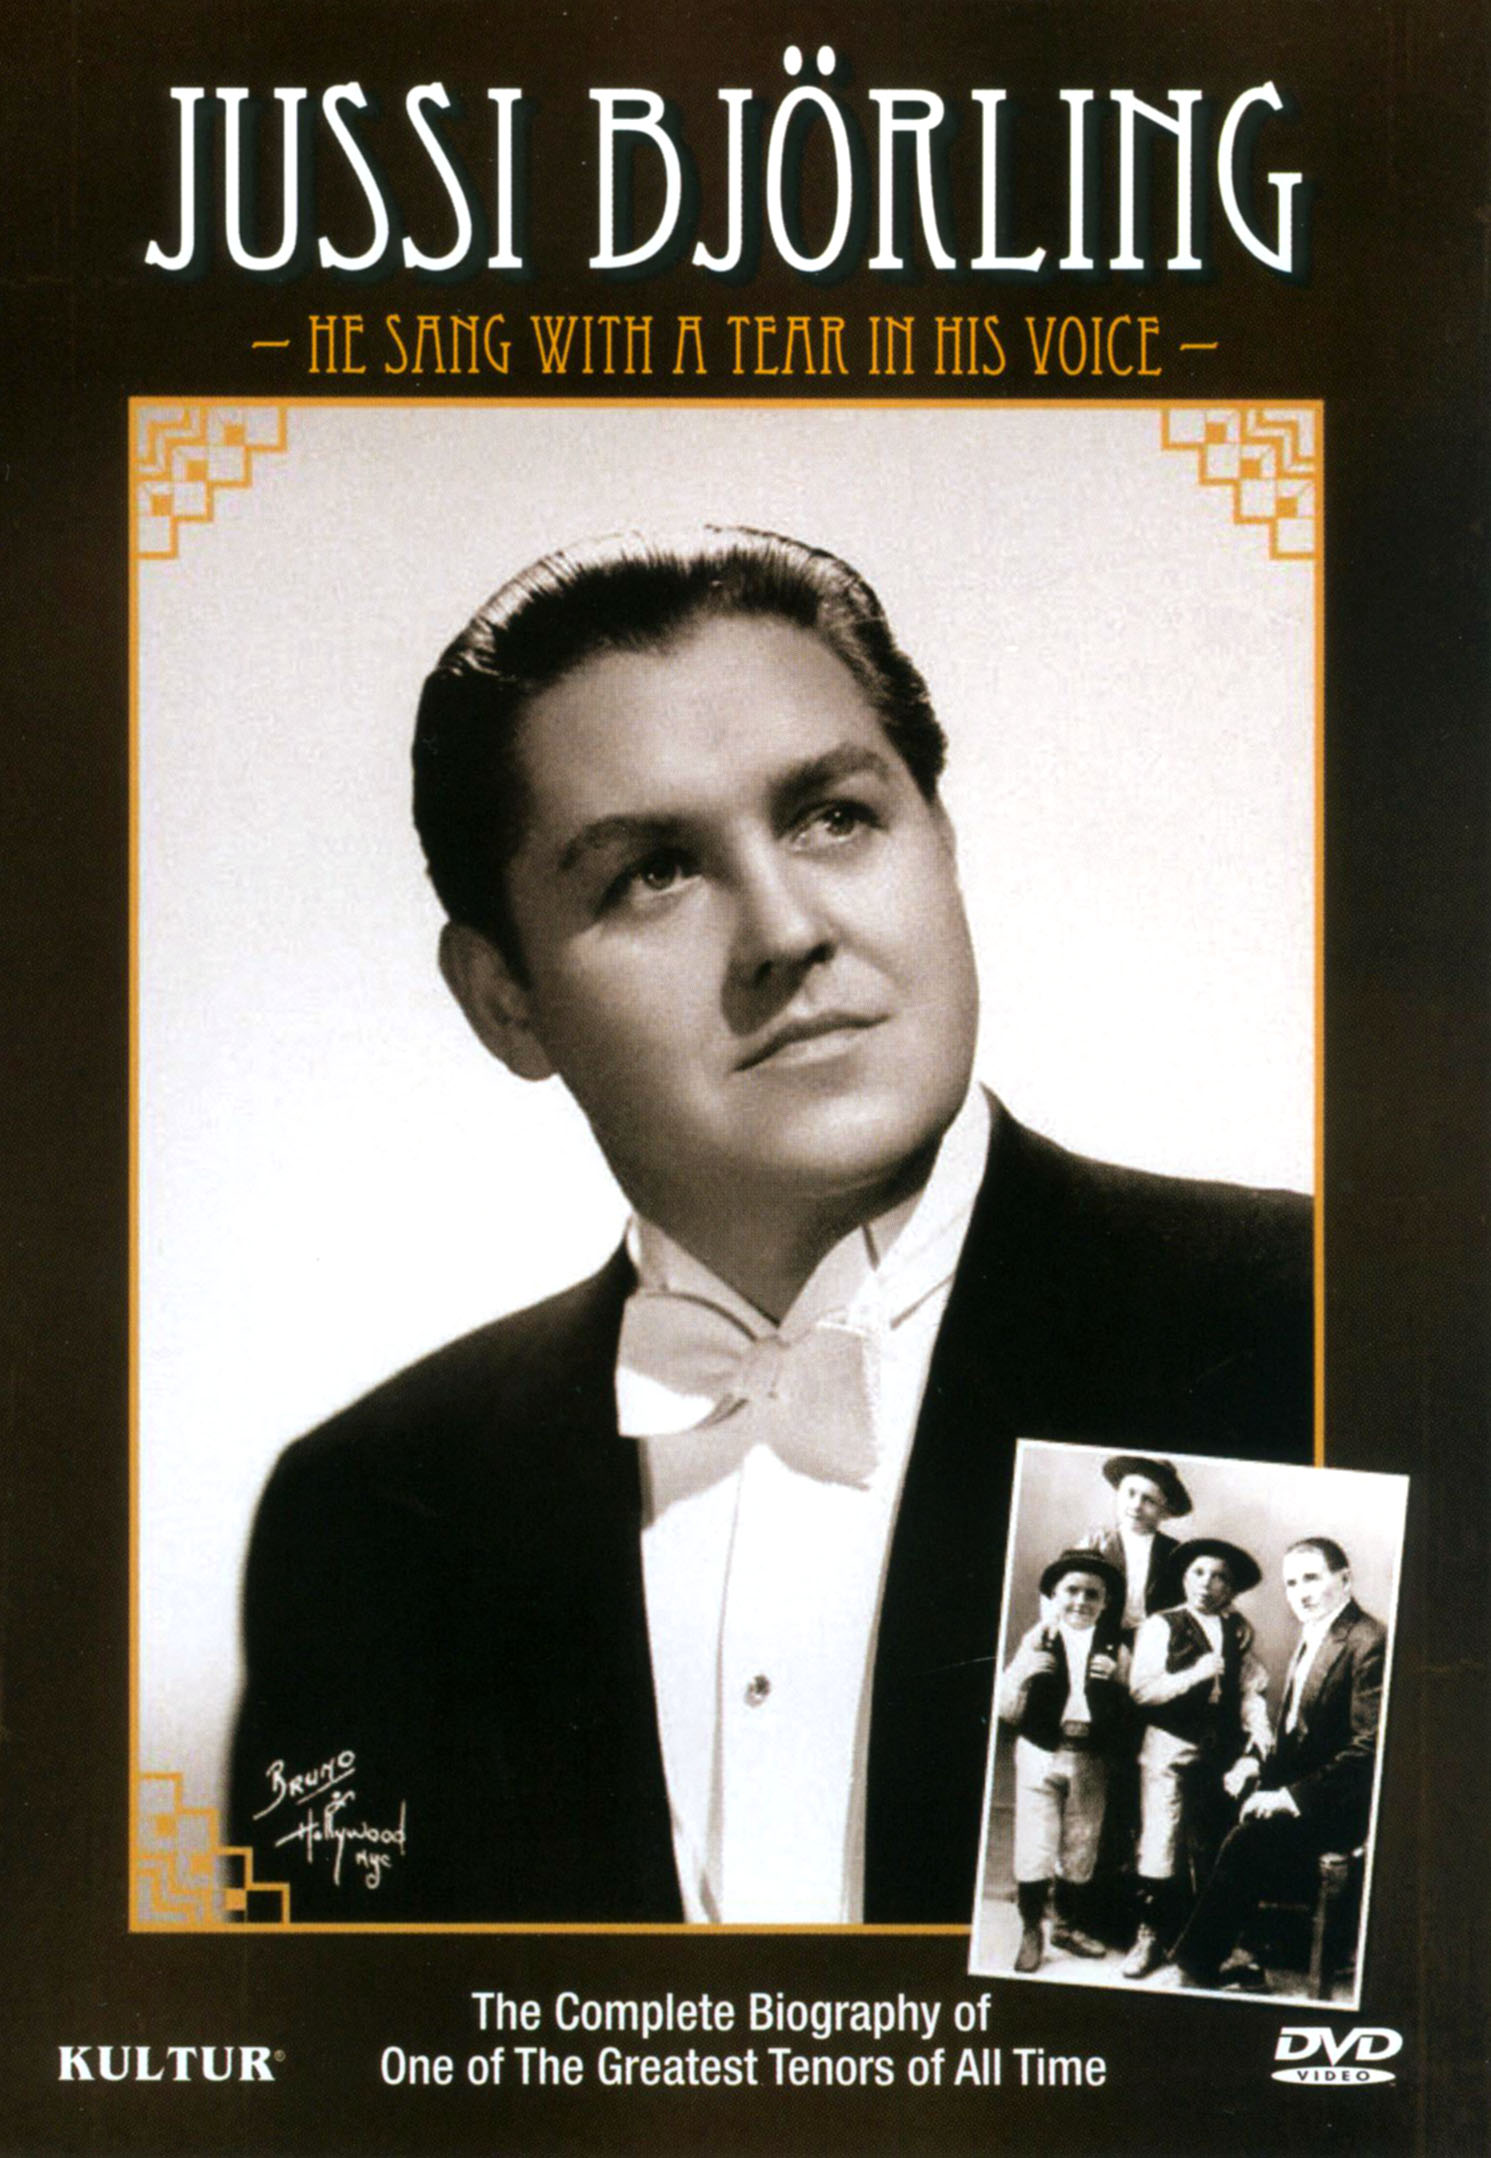 Jussi Björling: He Sang with a Tear in His Voice